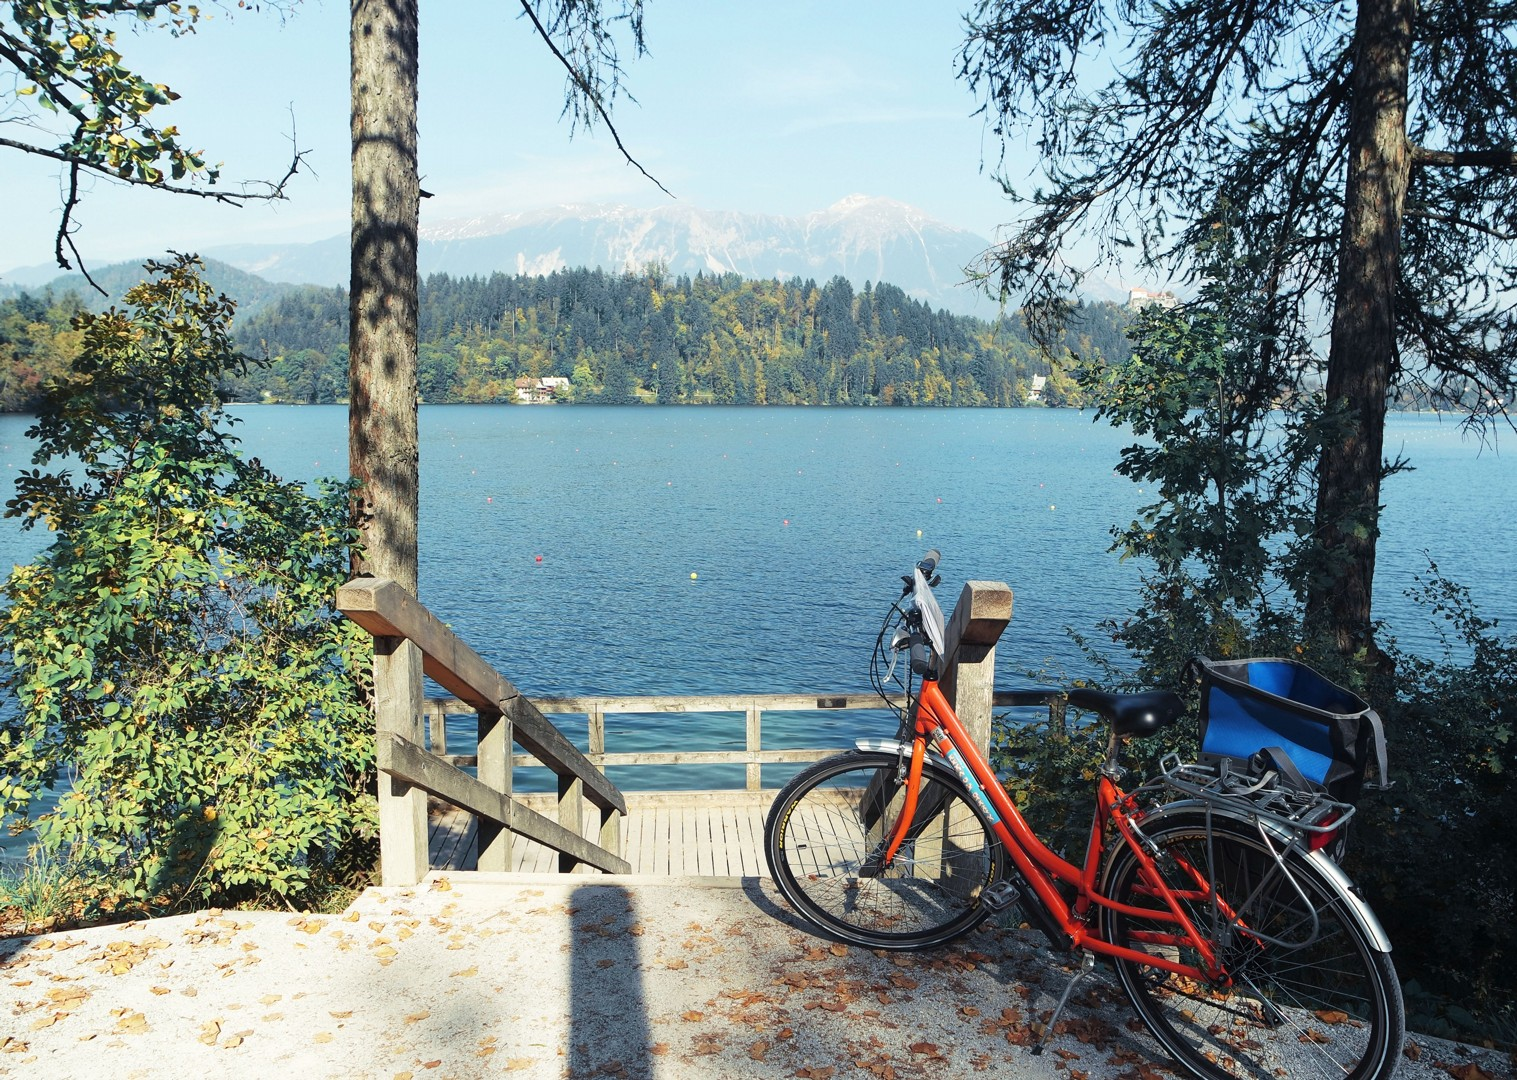 vintgar-and-pokljuka-gorges-cycling-holiday-lake-bled-slovenia.JPG - Slovenia - Highlights of Lake Bled - Self-Guided Leisure Cycling Holiday - Leisure Cycling